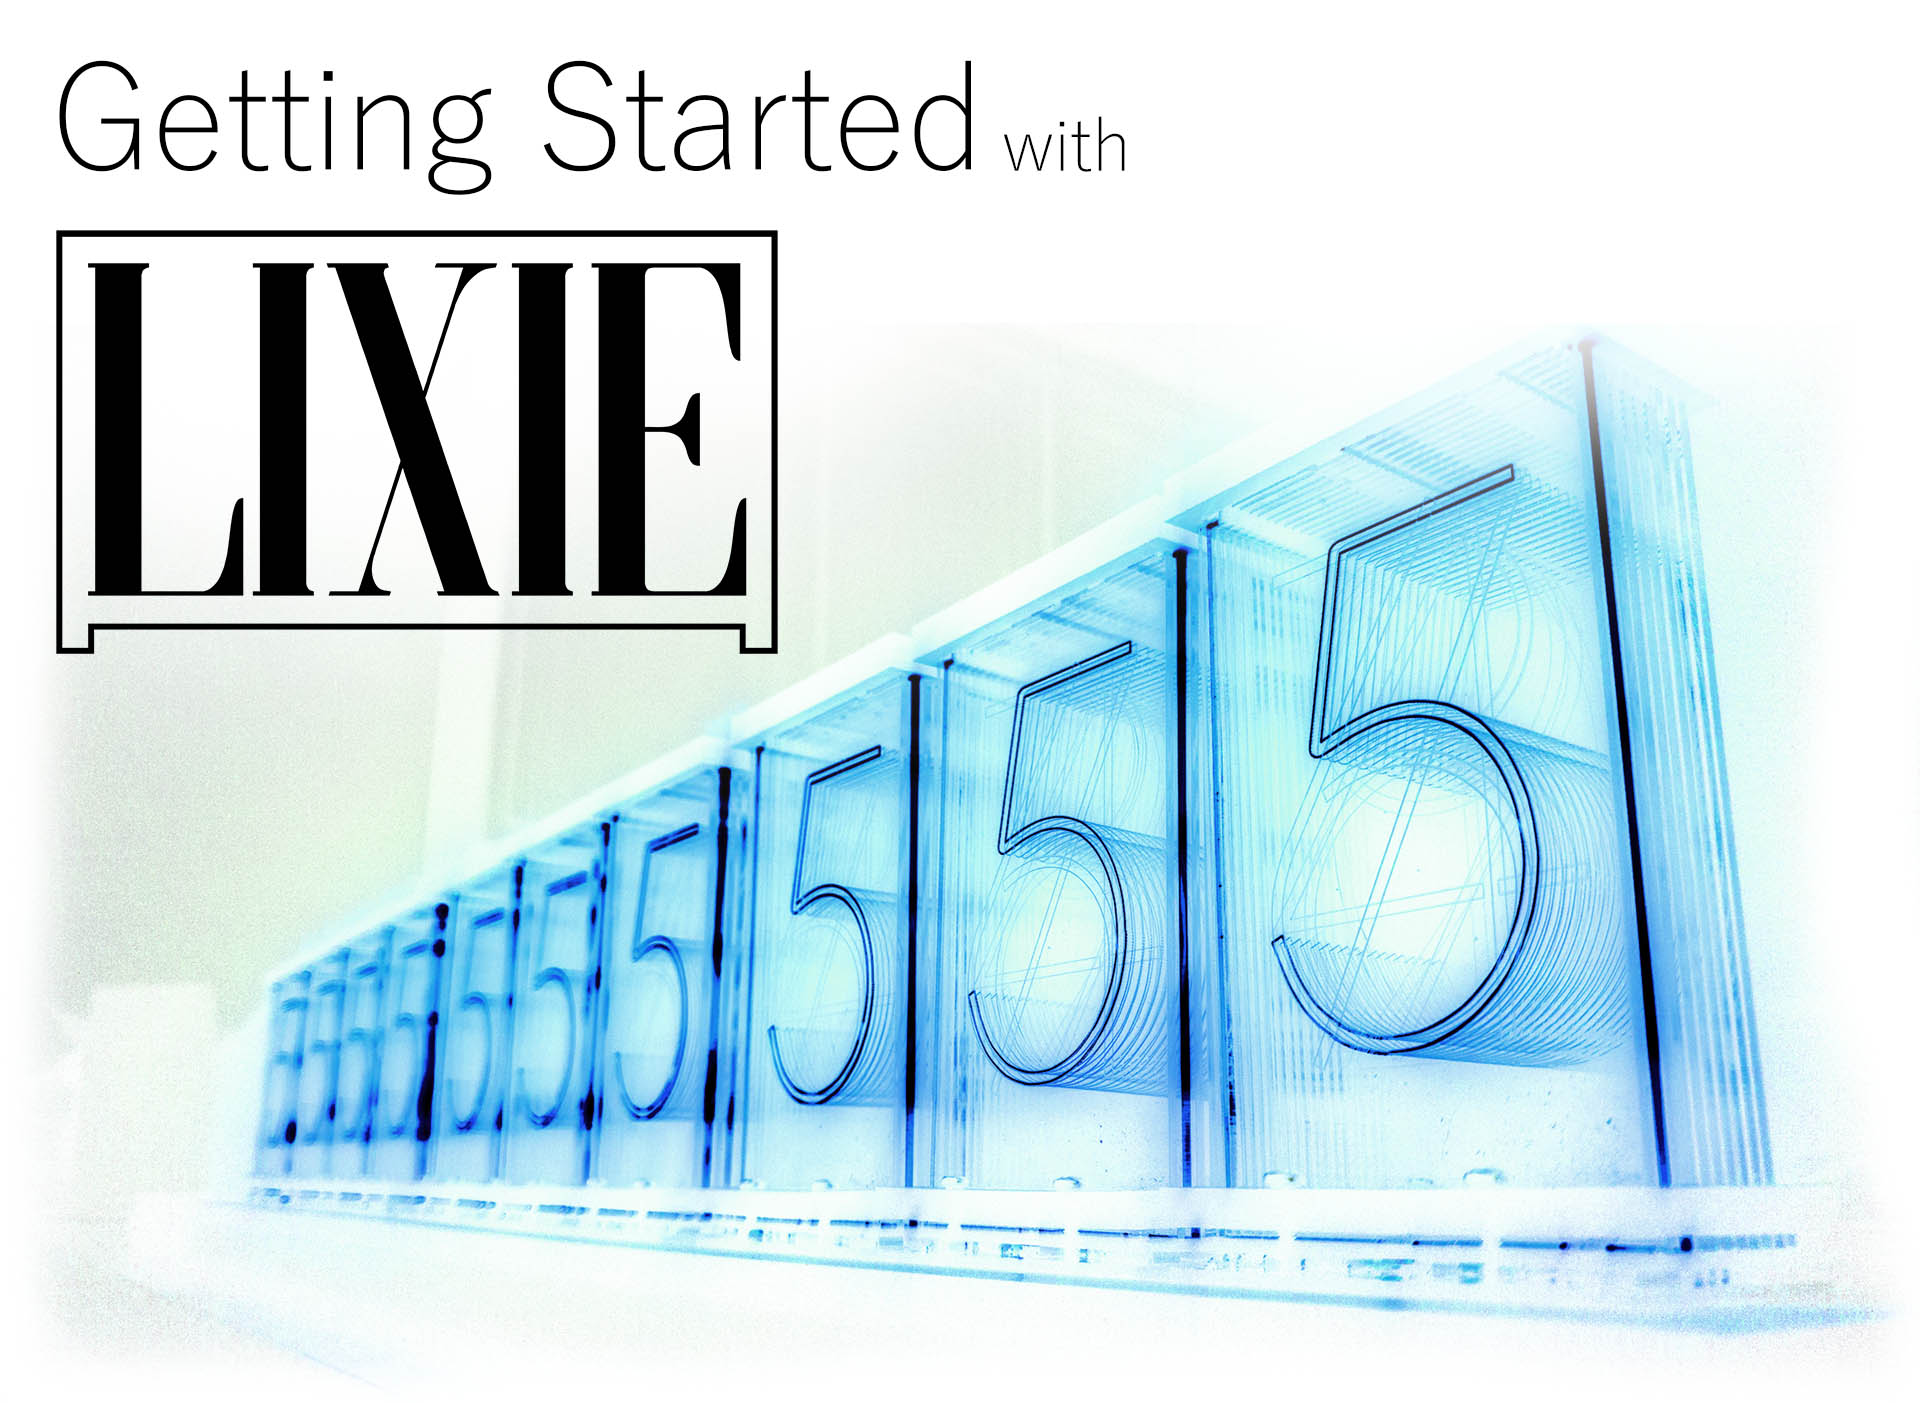 Lixie-arduino/getting-started md at master · connornishijima